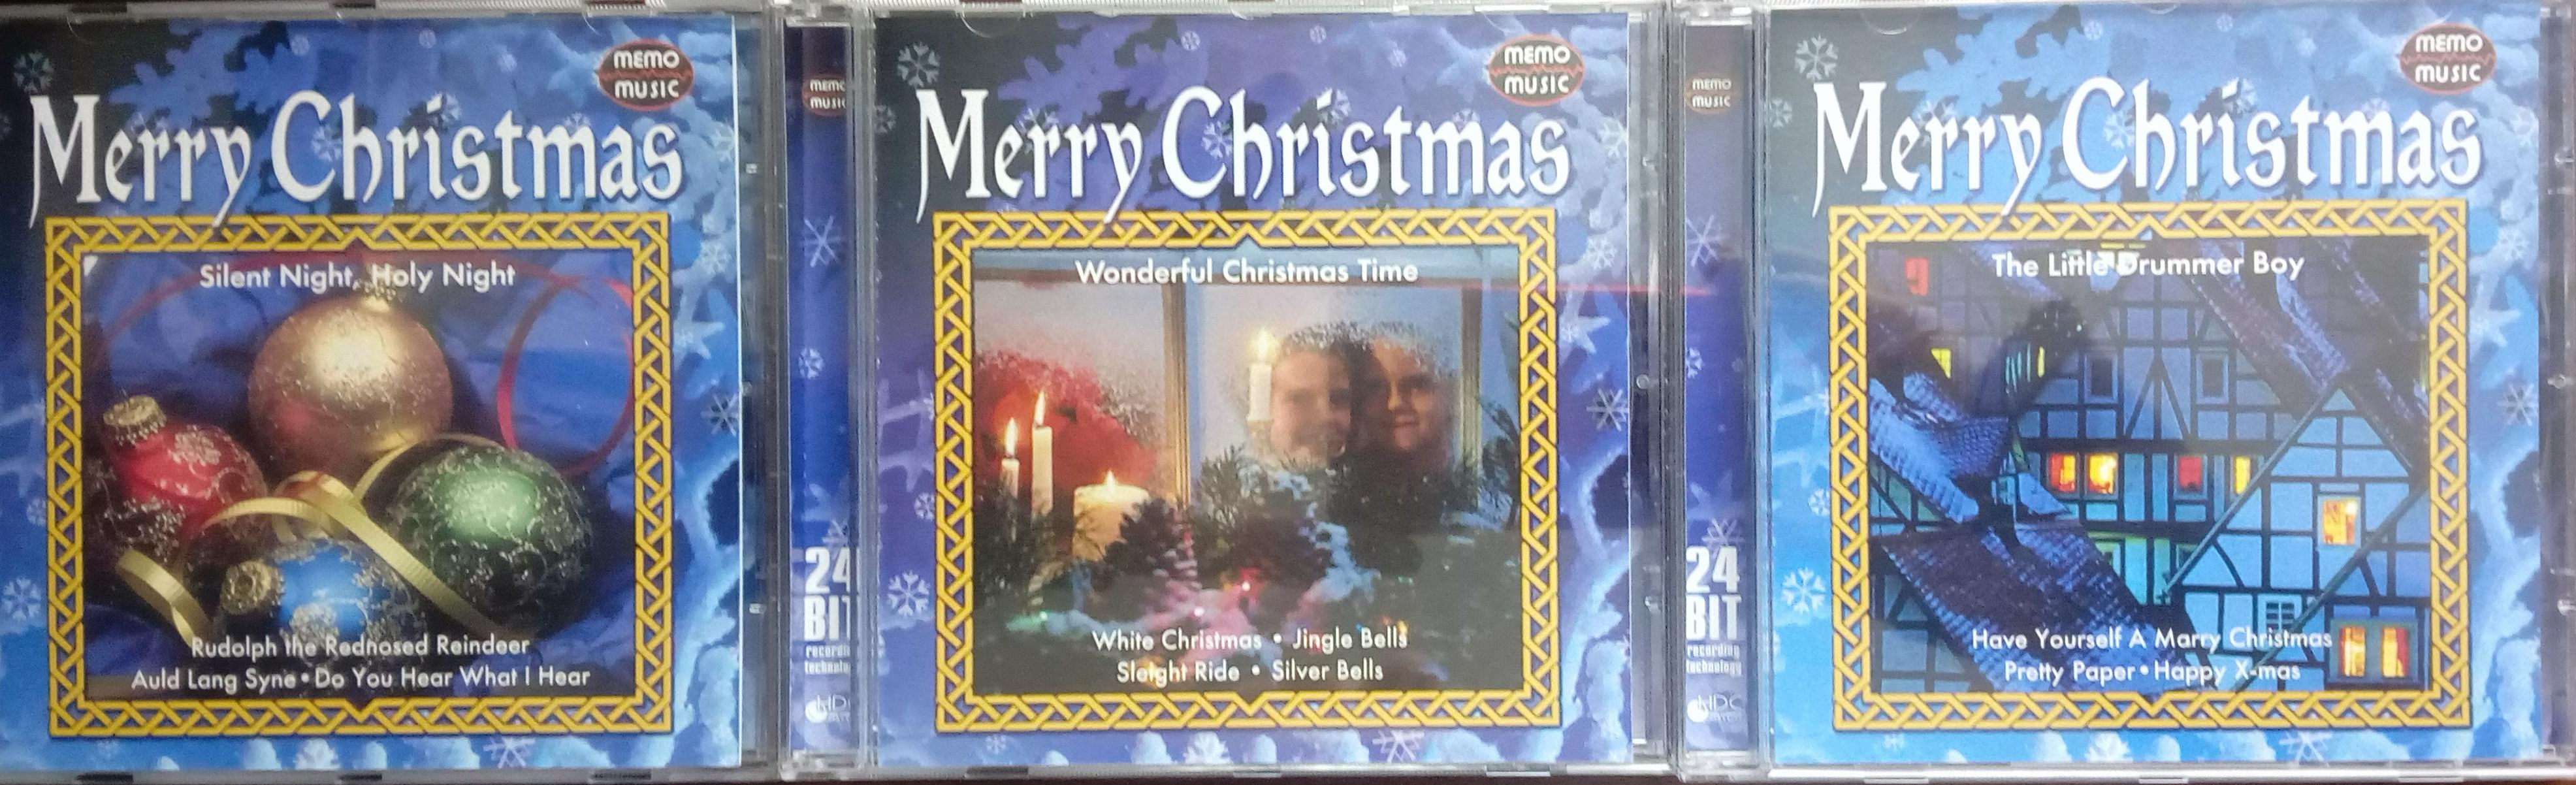 Merry Christmas - 3CD